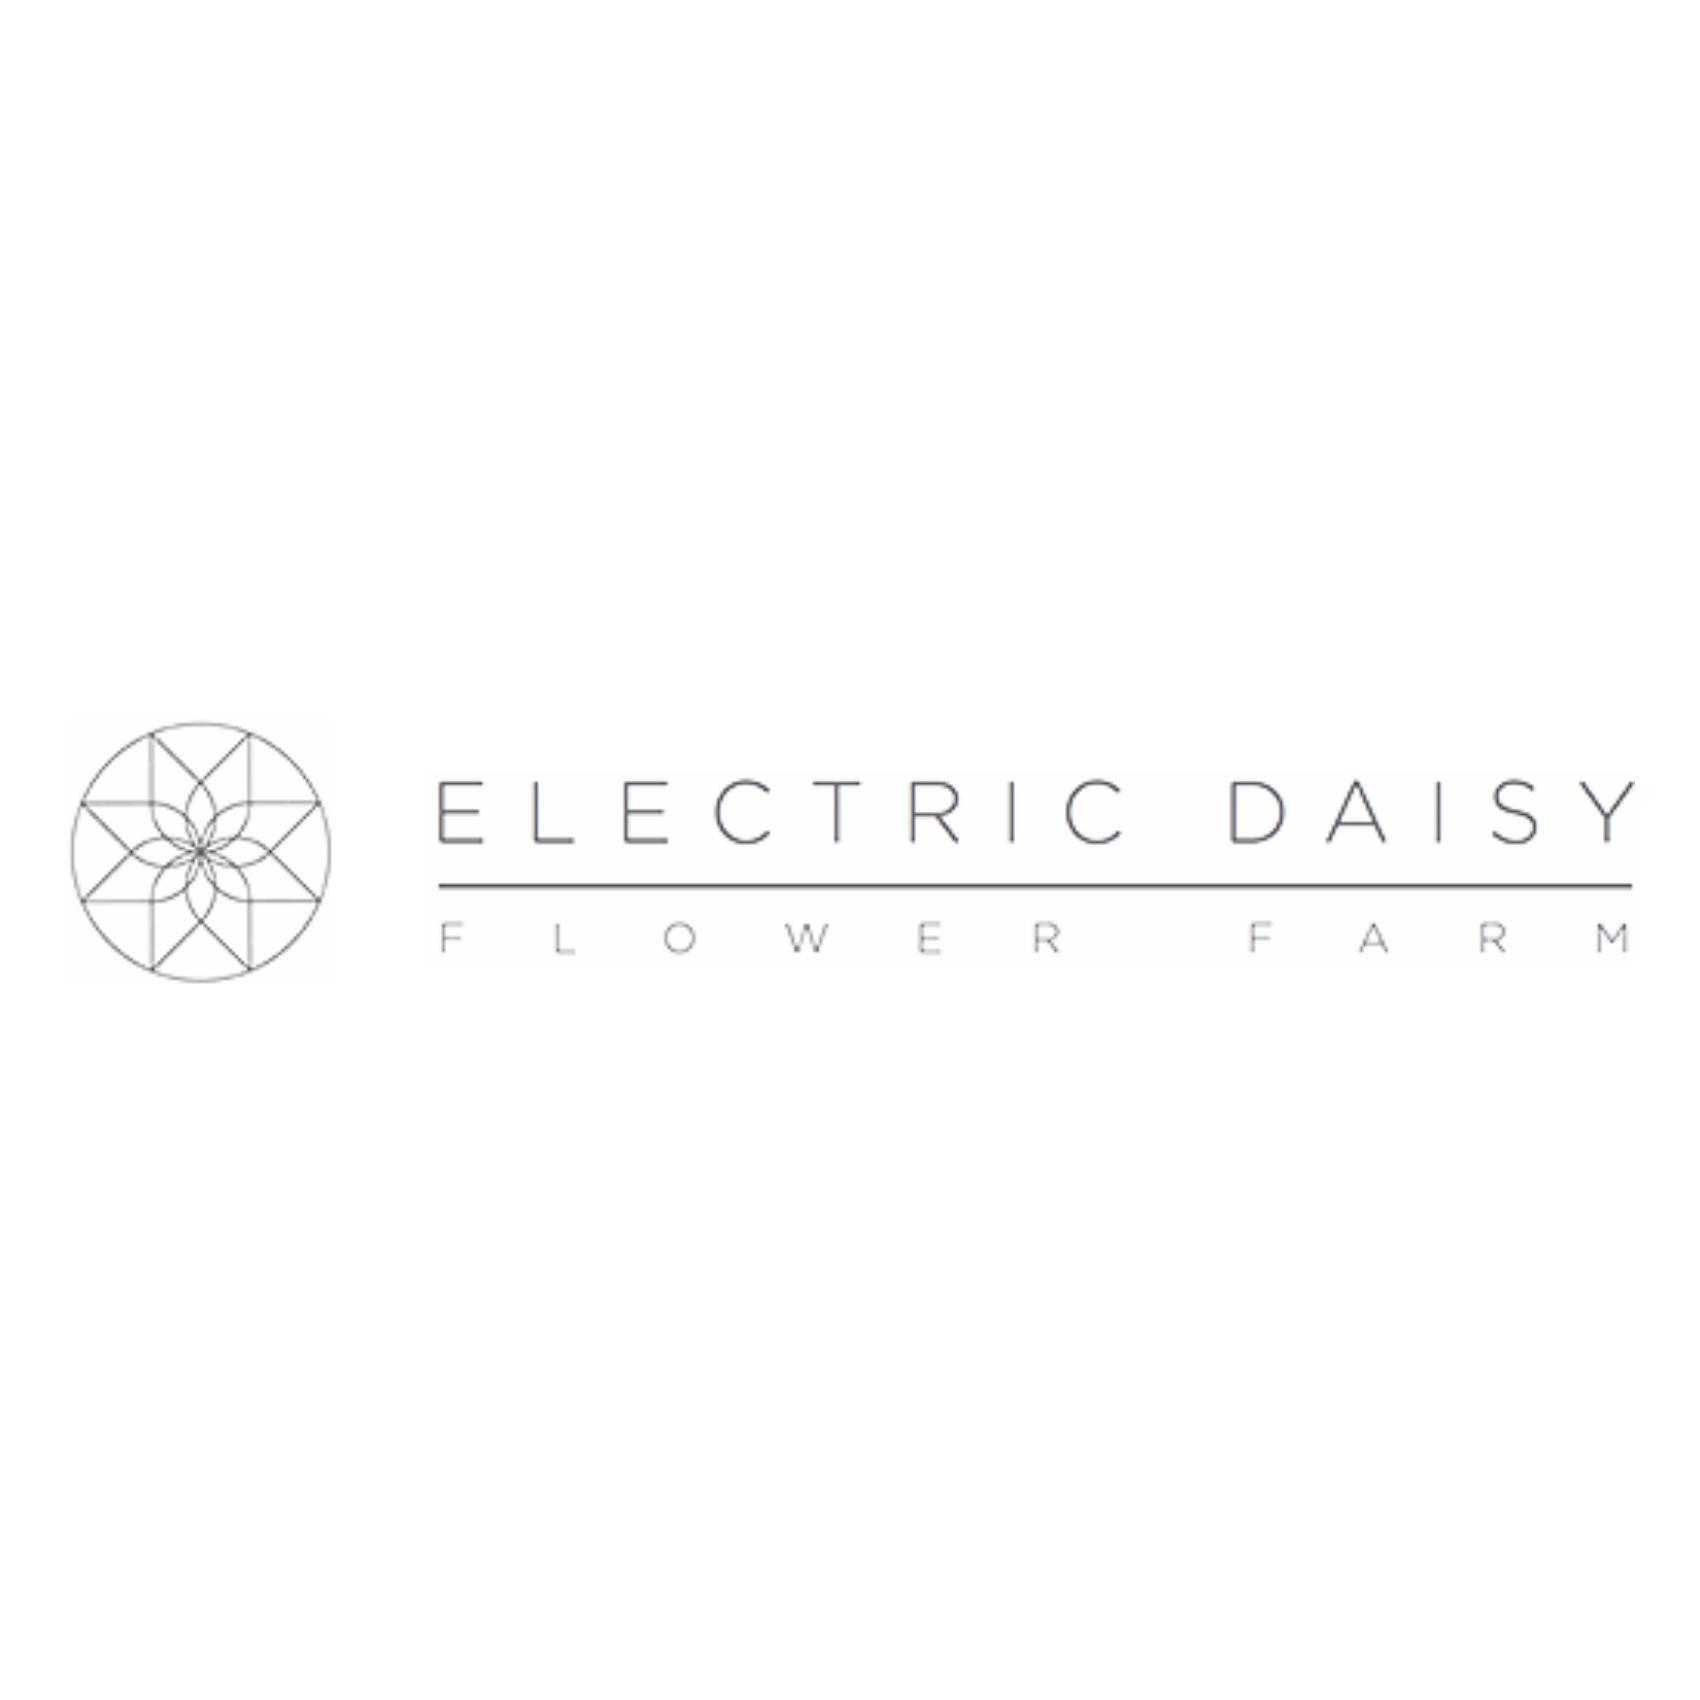 Electric Daisy Flower Farm   We have recently started working with Fiona and the team at this North Somerset flower farm providing media and communications support, planning and delivery.